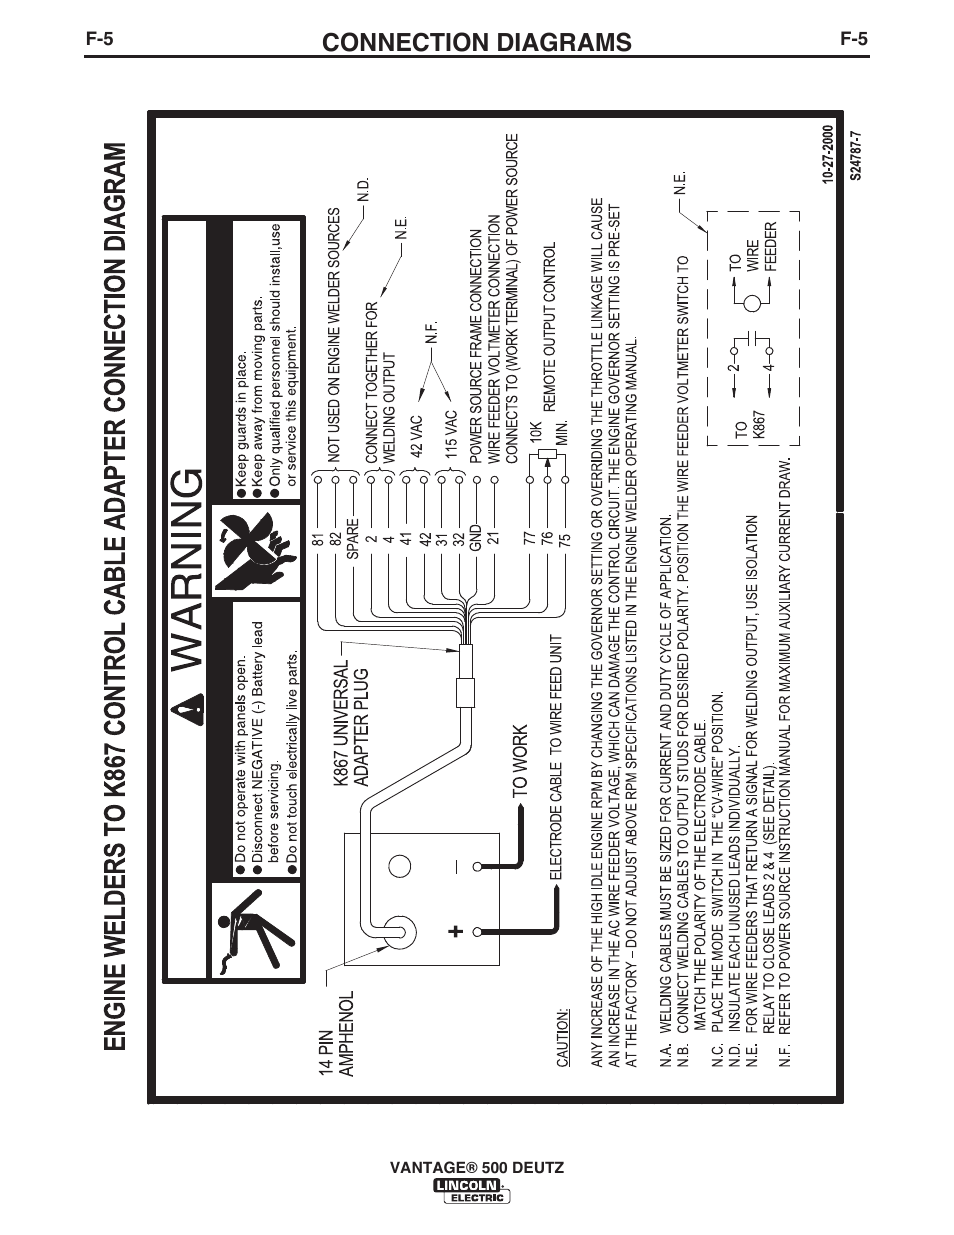 hight resolution of connection diagrams lincoln electric im954 vantage 500 deutz user manual page 41 53